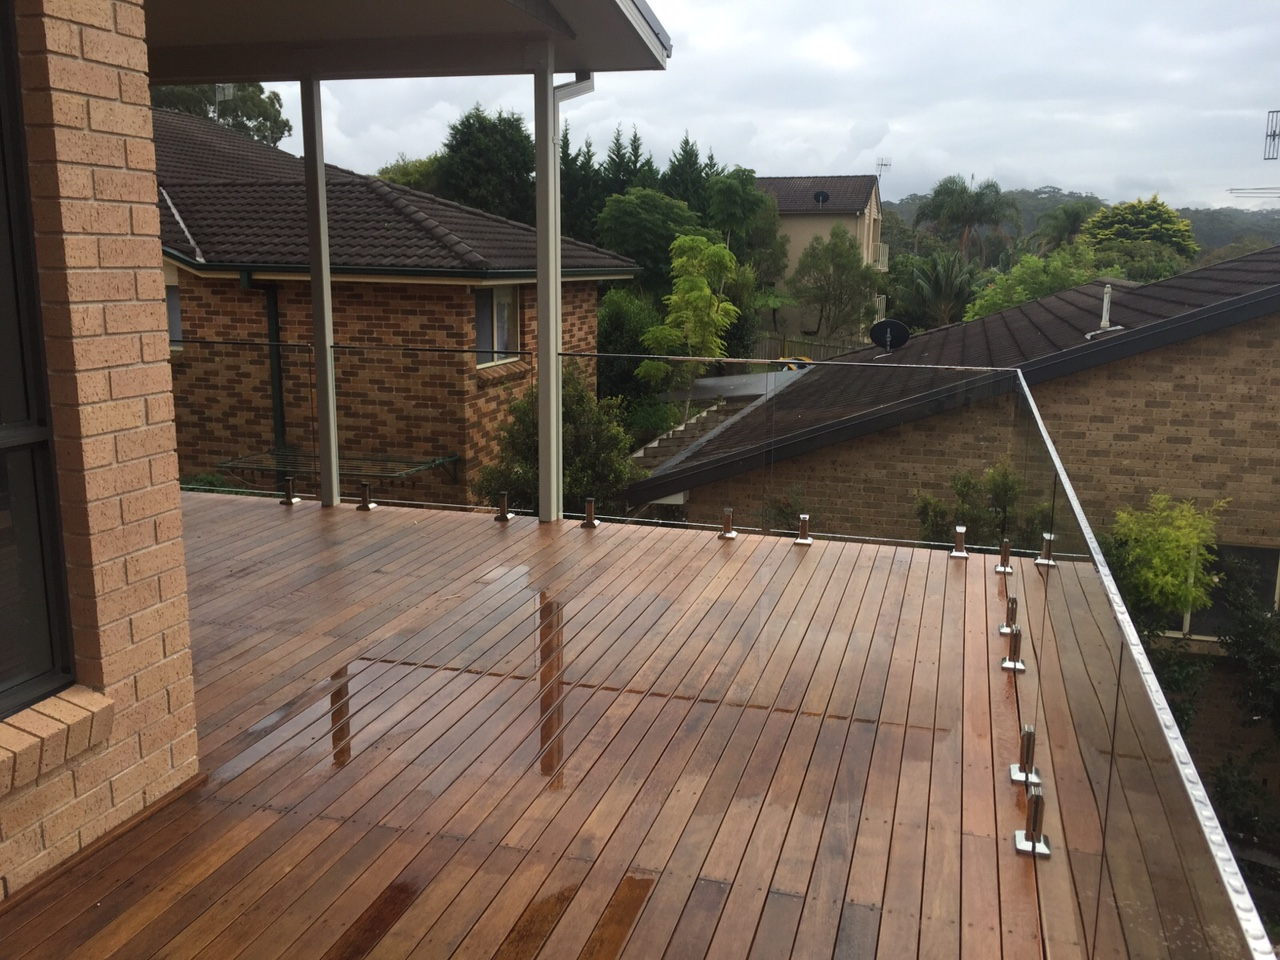 Framelass glass railings to deck